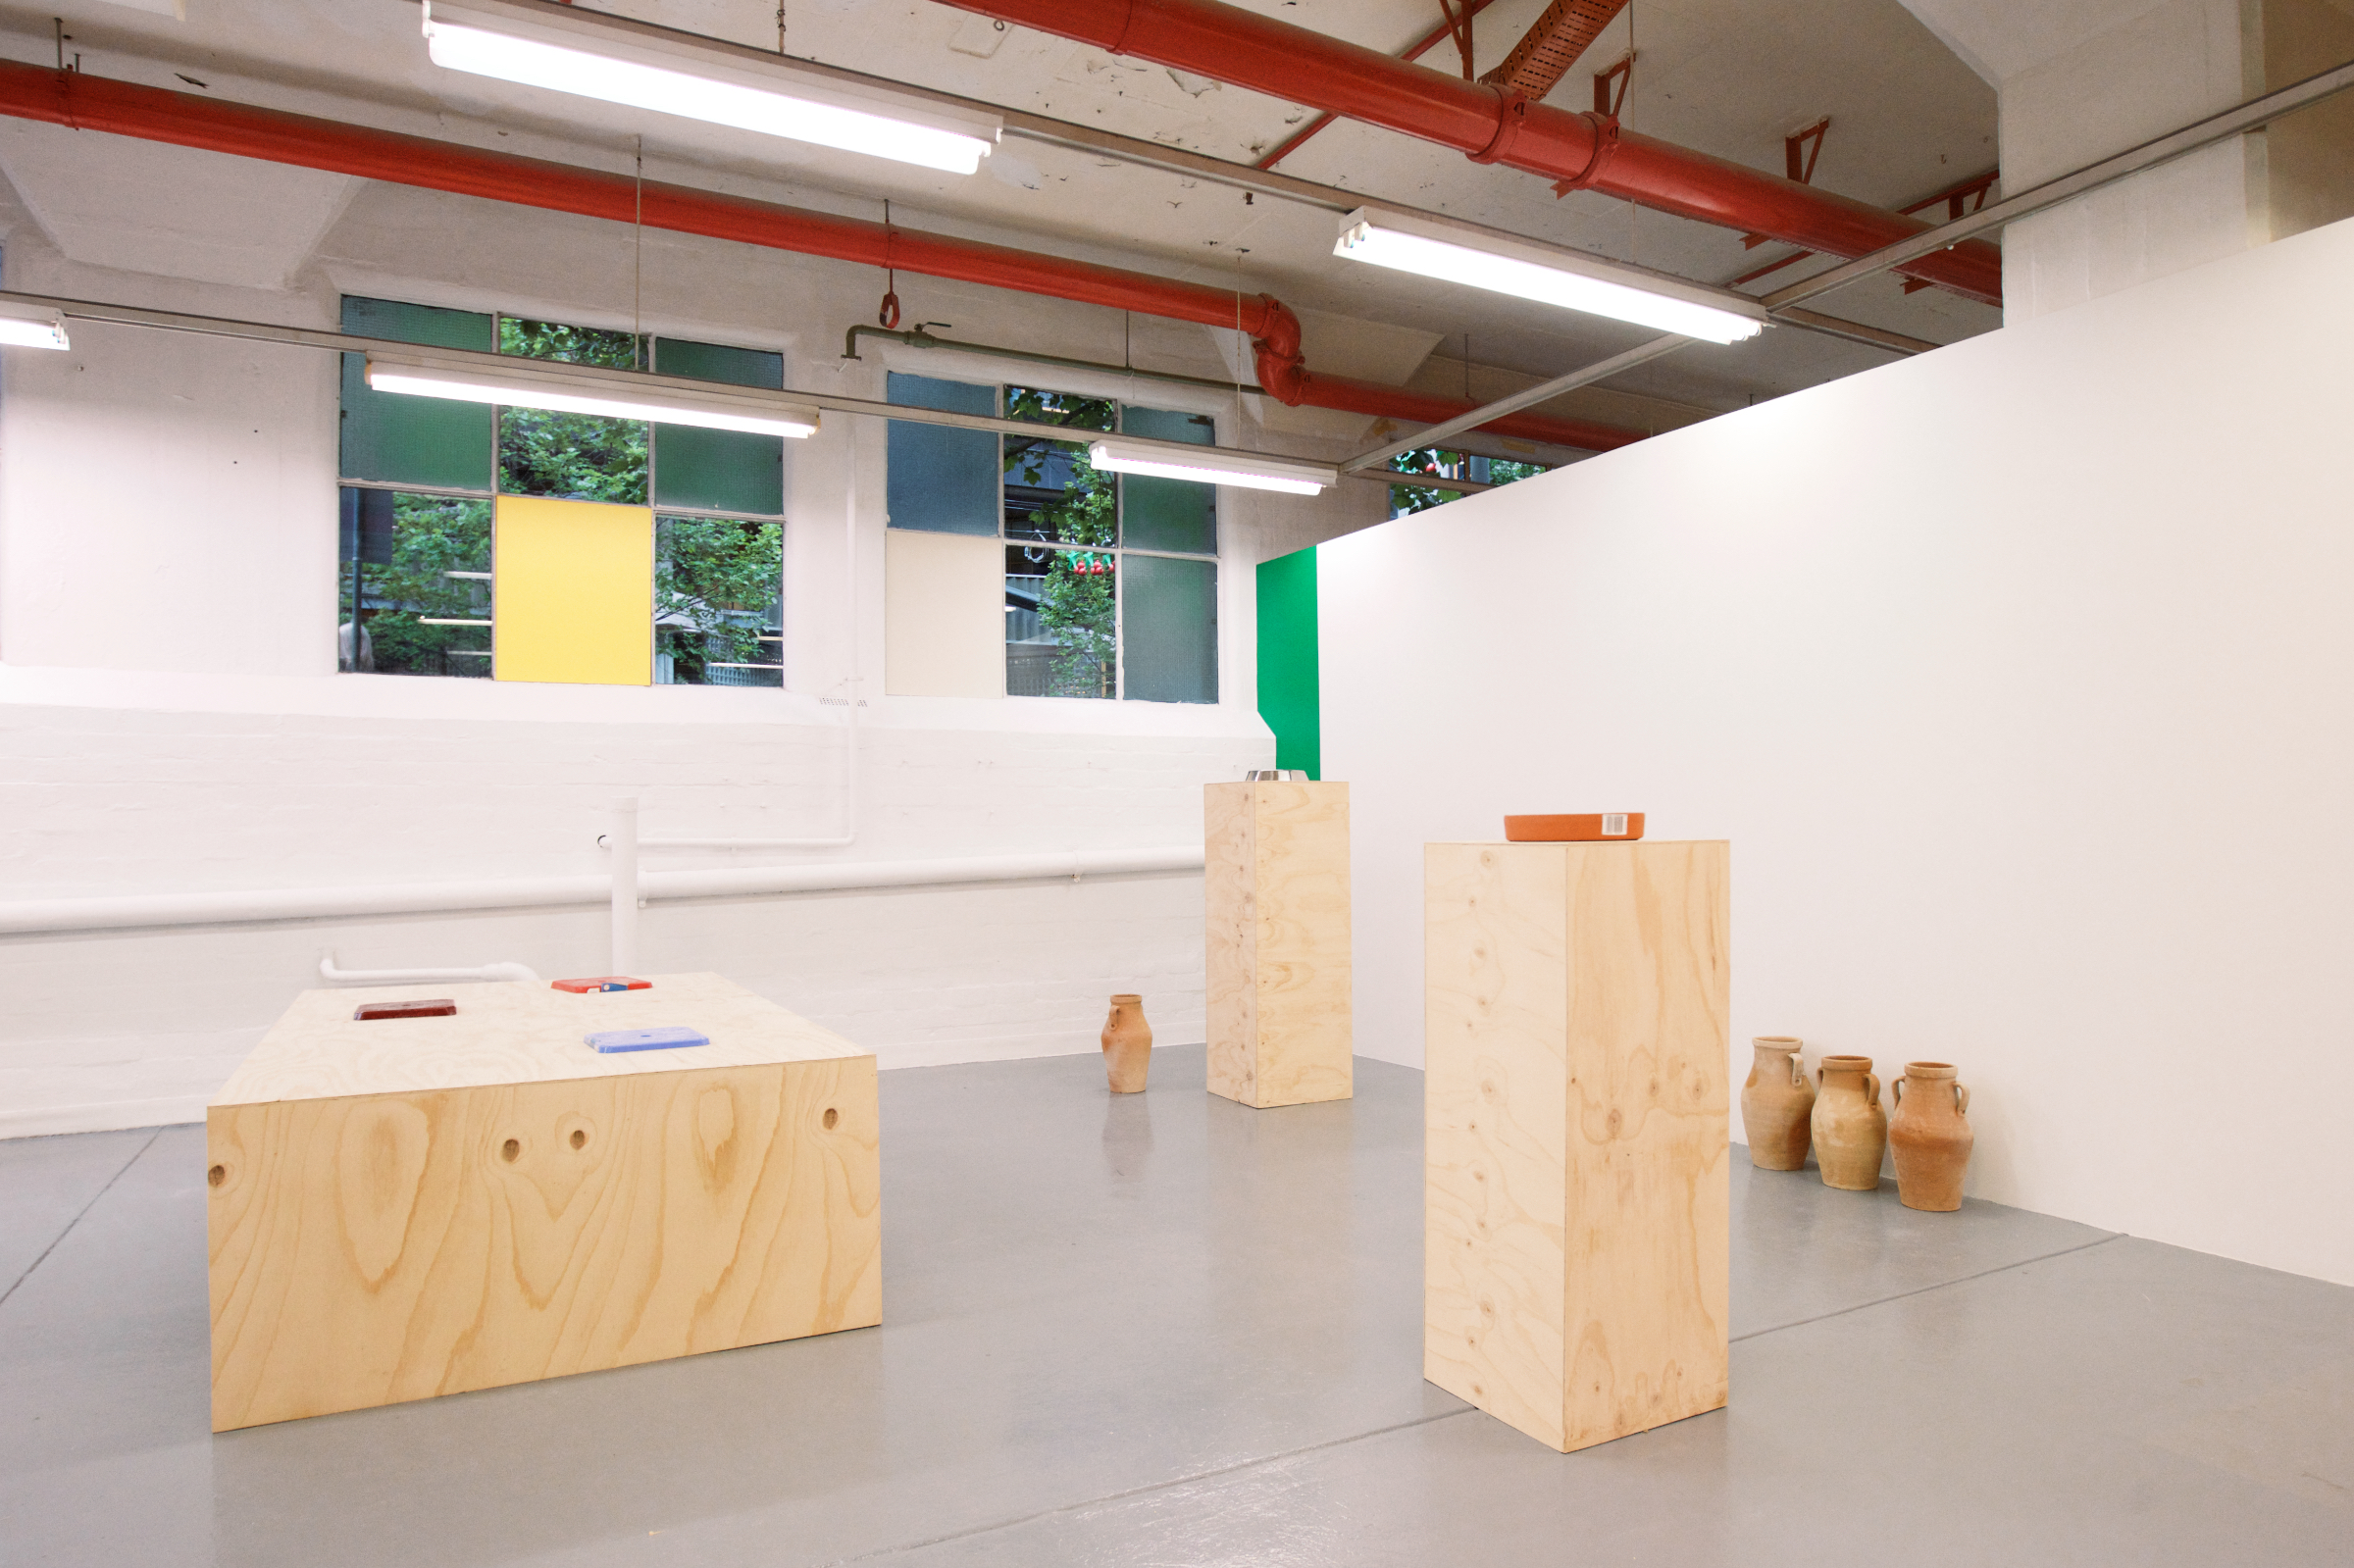 Penelope Moye, Partial install shot of  Receivers  exhibition,L-R: Stools, 2016,  plywood, plastic stools, 58 x 118 x 201 cm, Aut nihil, 2016,  acrylic paint on eight MDF boards, dimensions variable, Untitled, 2016,  four  terracotta jugs, dimensions variable, Vacancy, 2016, acrylic paint, dimensions variable, Dog's bowl, 2016,  plywood, stainless steel, 125 x 41 x 41 cm, Pot, 2016,  plywood, terracotta pot, 107 x 38 x 38 cm. Photo credit: Andy Hattan